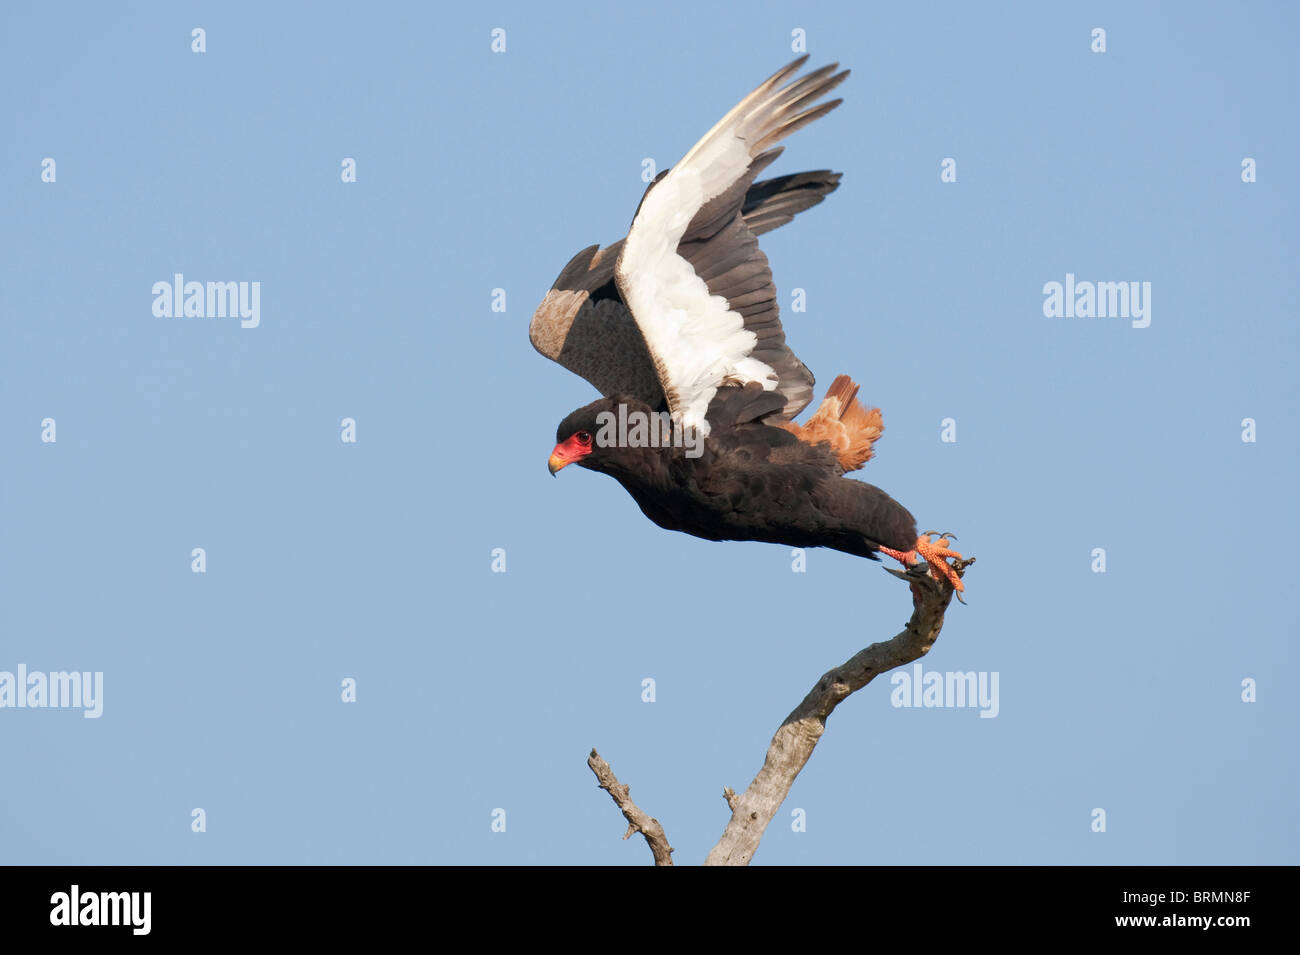 Bateleur taking off from branch - Stock Image